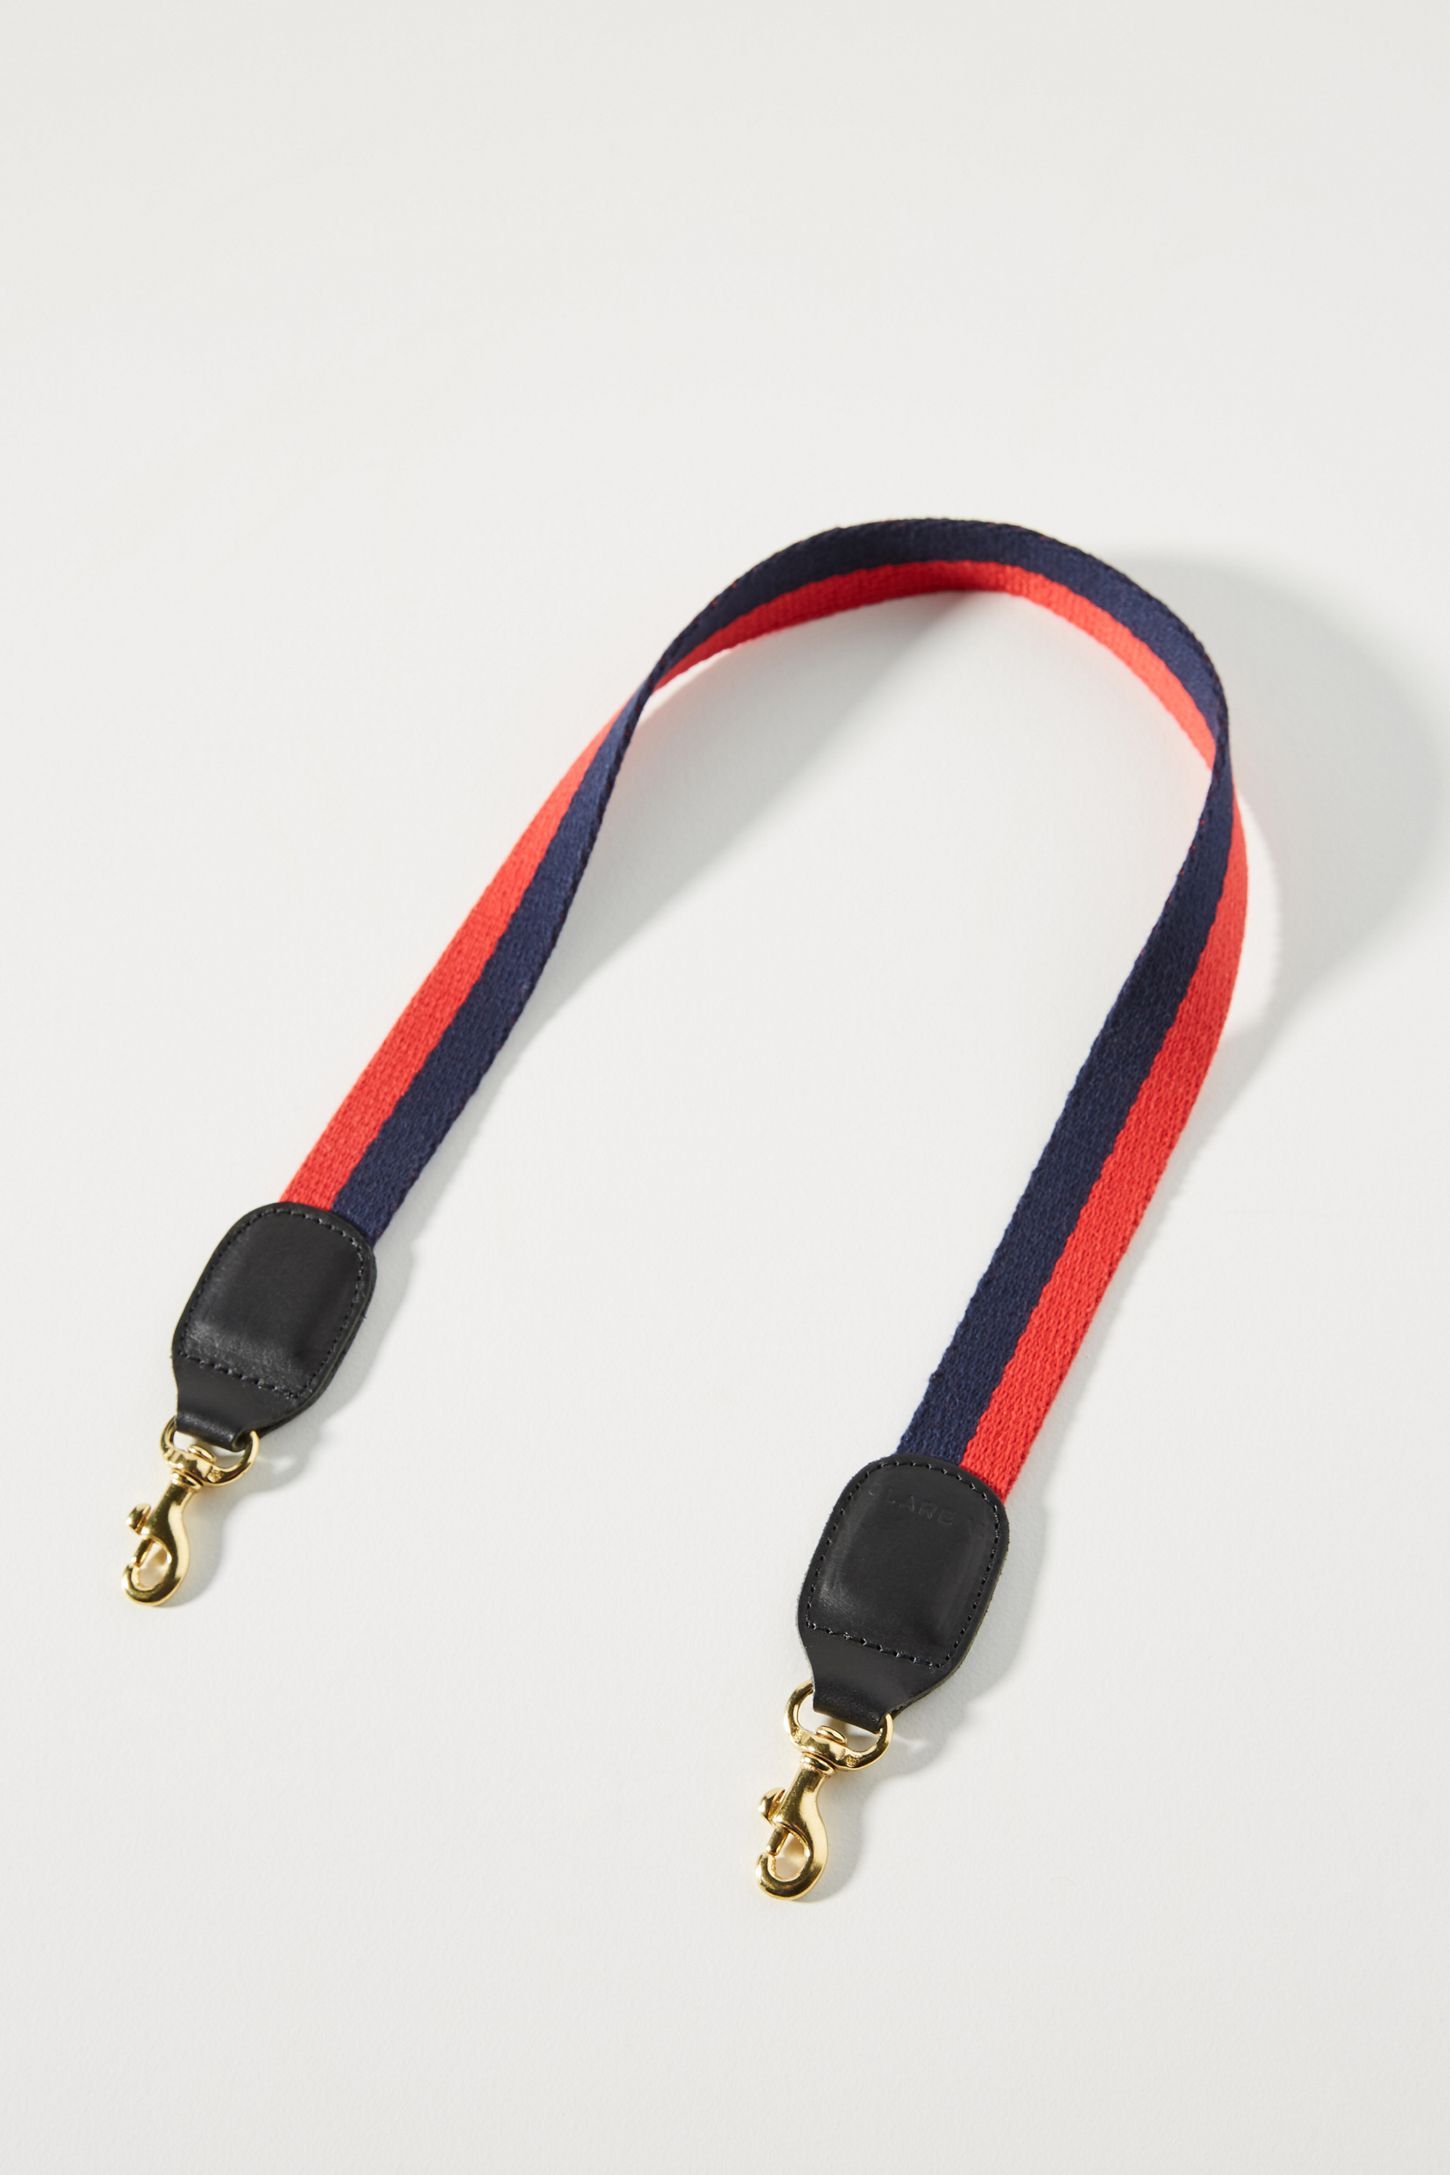 075b745e8 Clare V. Travel Shoulder Strap | Anthropologie